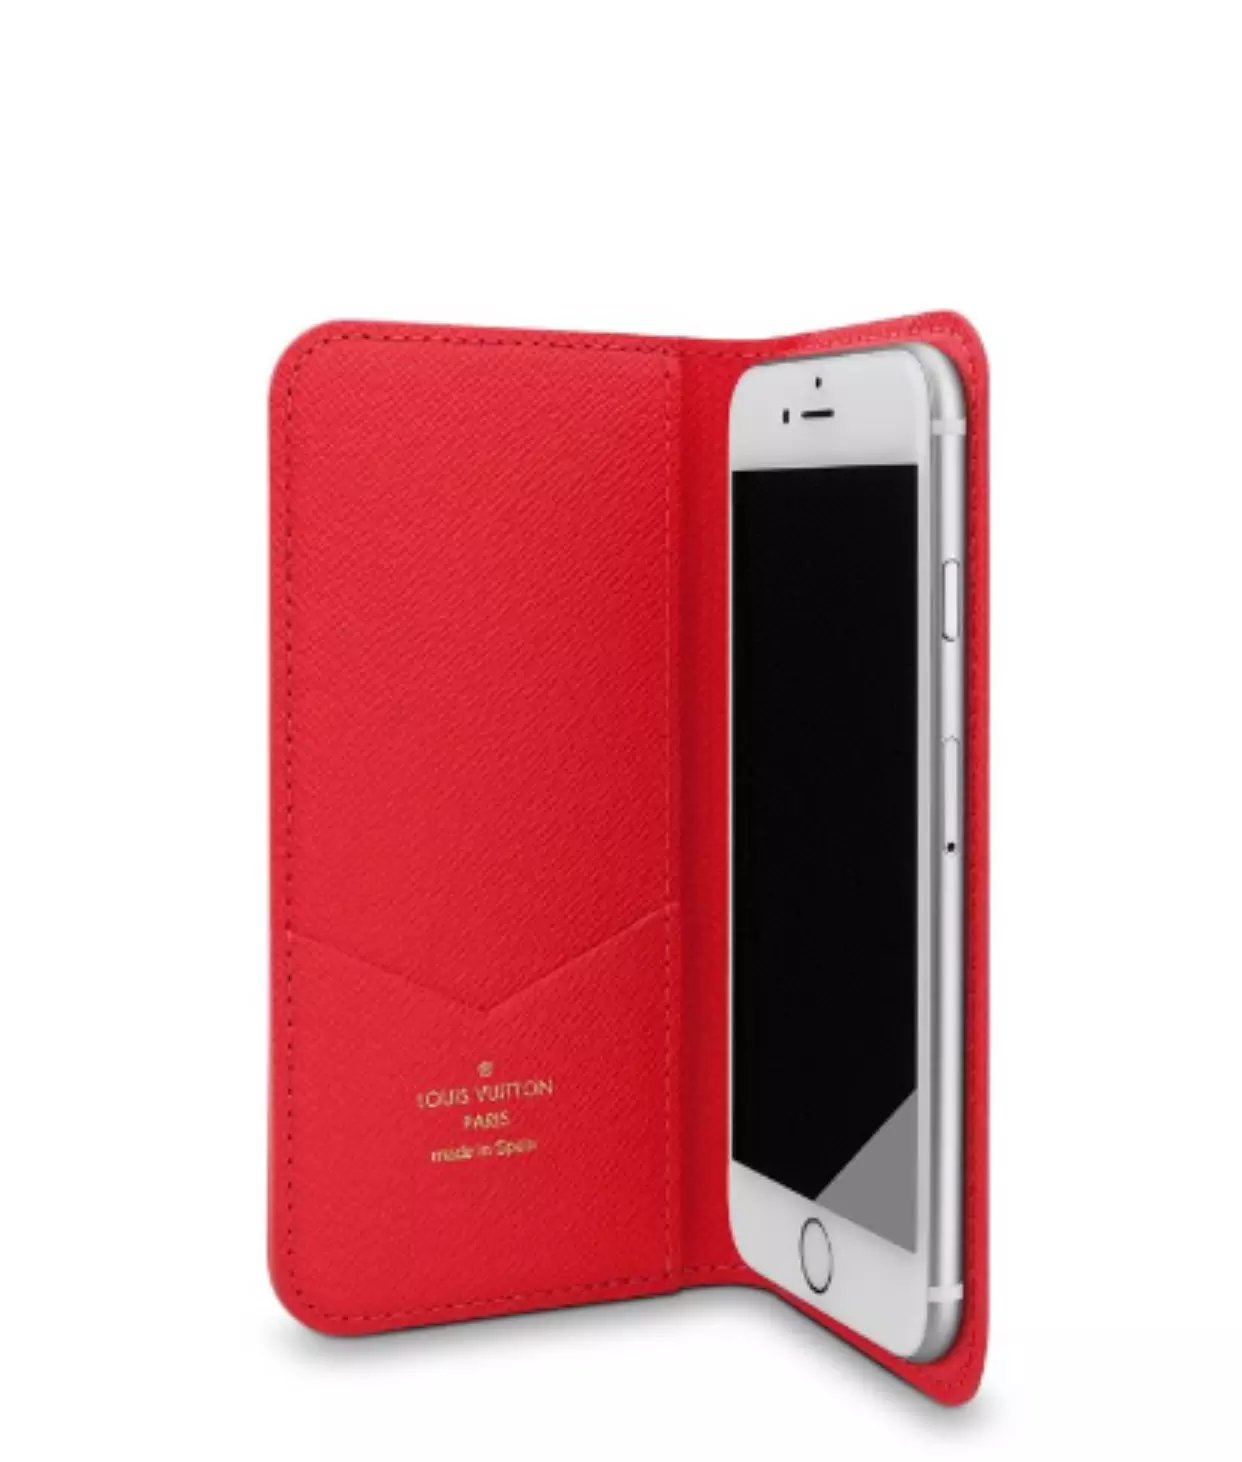 hülle iphone iphone handyhülle selbst gestalten Louis Vuitton iphone7 Plus hülle 7 hülle apple wann kommt das iphone 6 raus etui iphone 7 Plus leder bilder iphone 6 handyhüllen für iphone 7 Plus handyhülle i phone